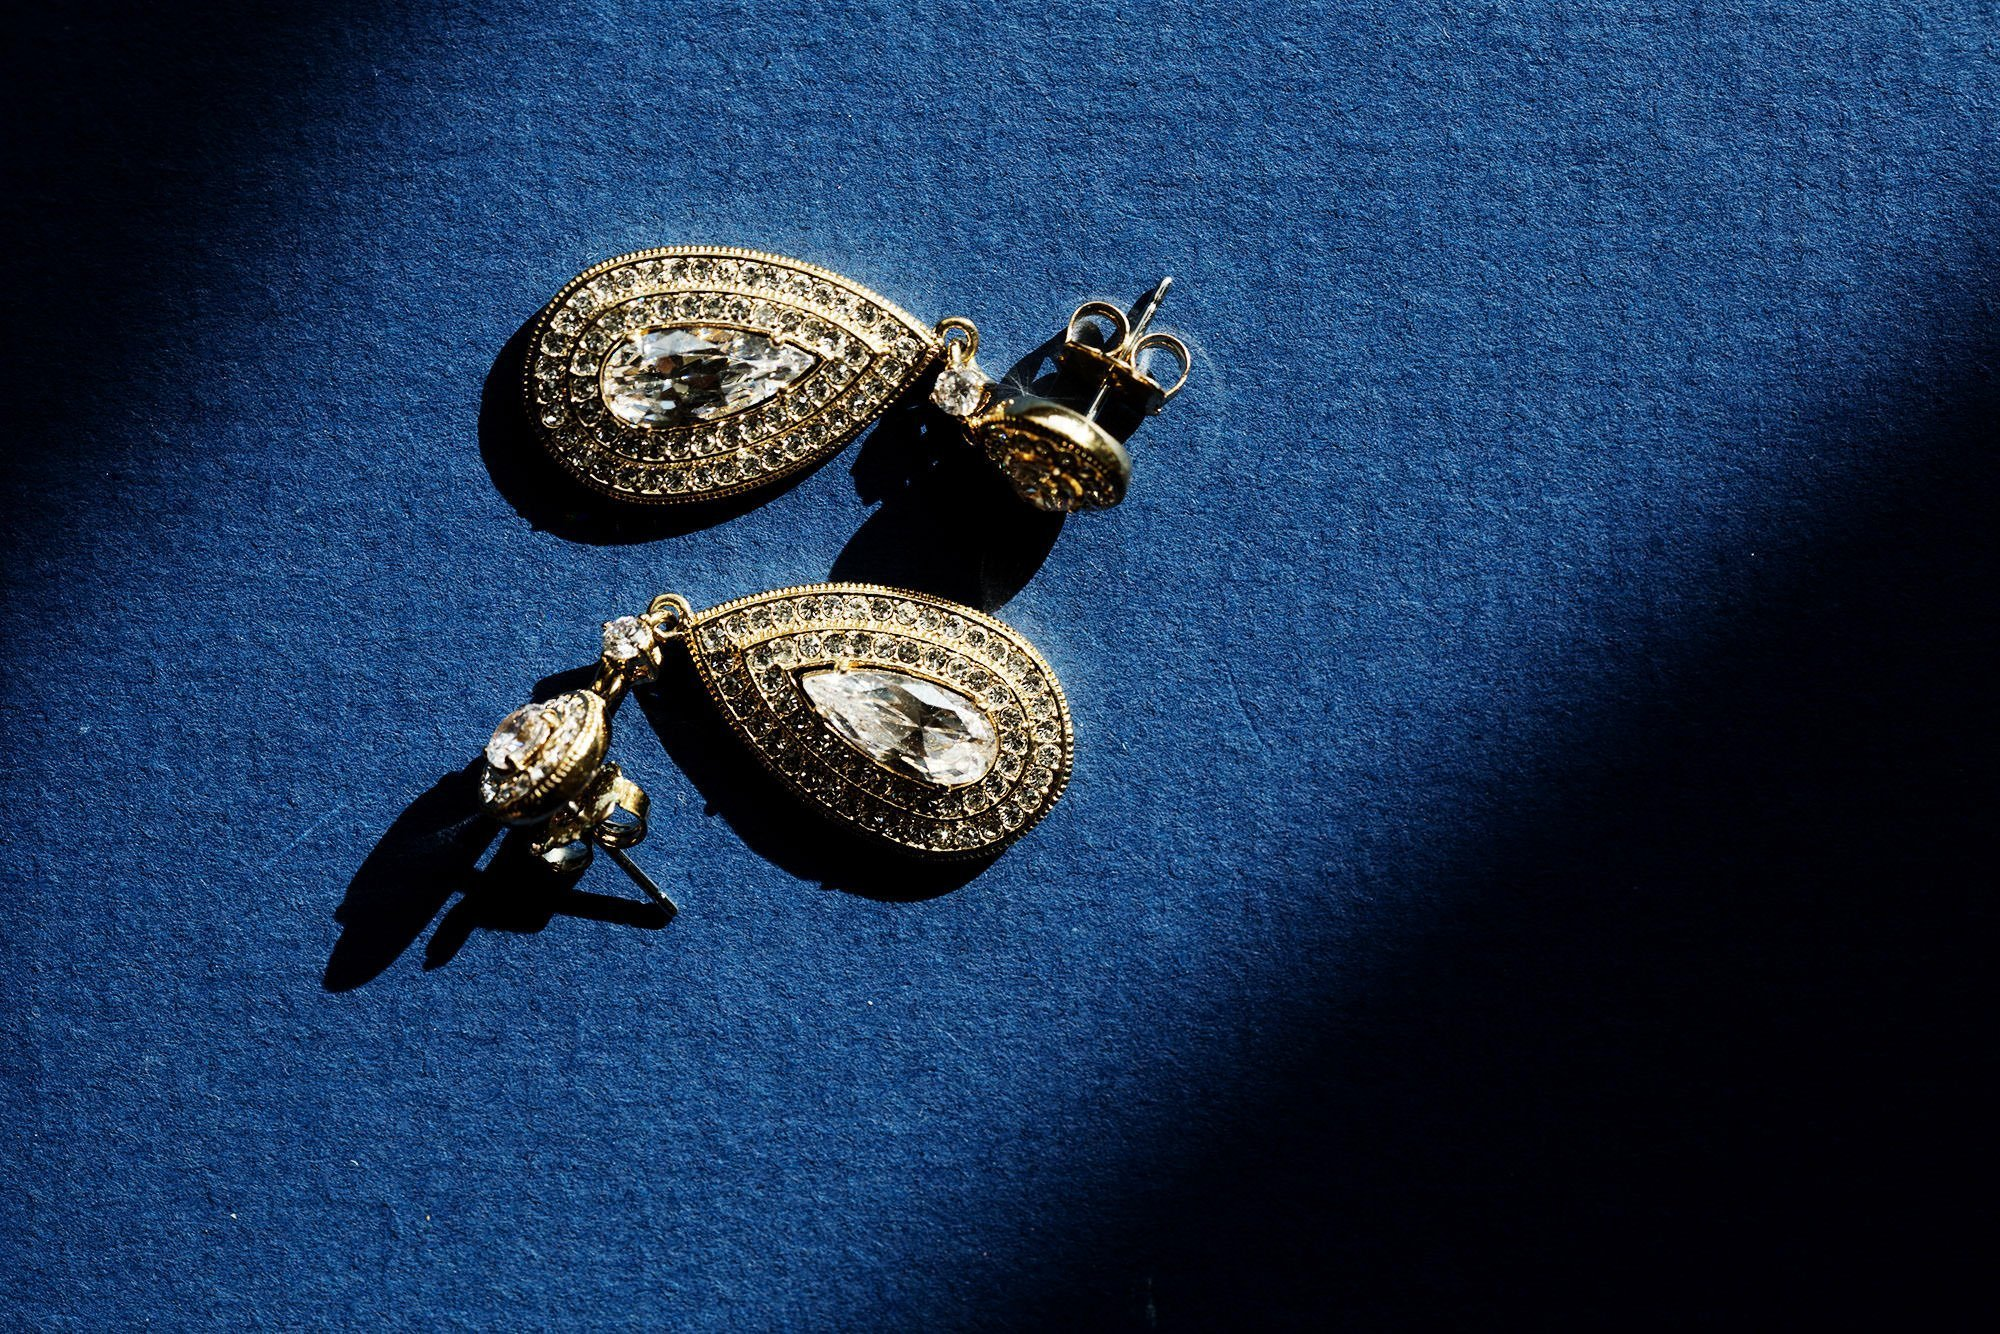 A detail of the bride's earrings.